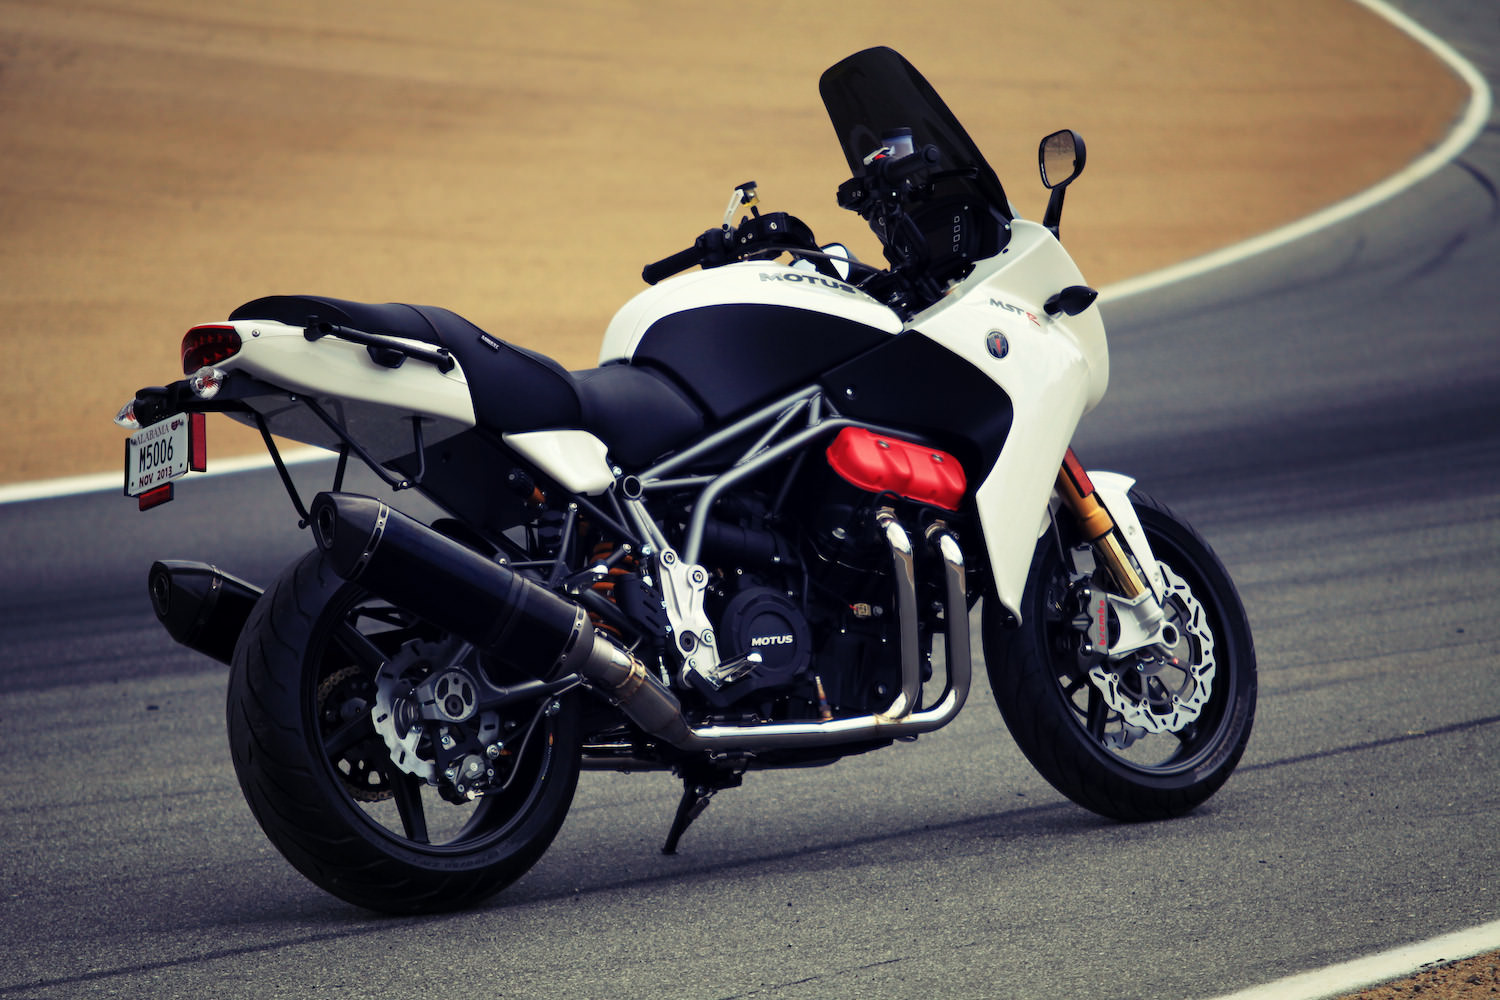 motus motorcycle mst motorcycles touring sport american v4 bike production silodrome mstr version motor sports revealed engine cycles introduces related